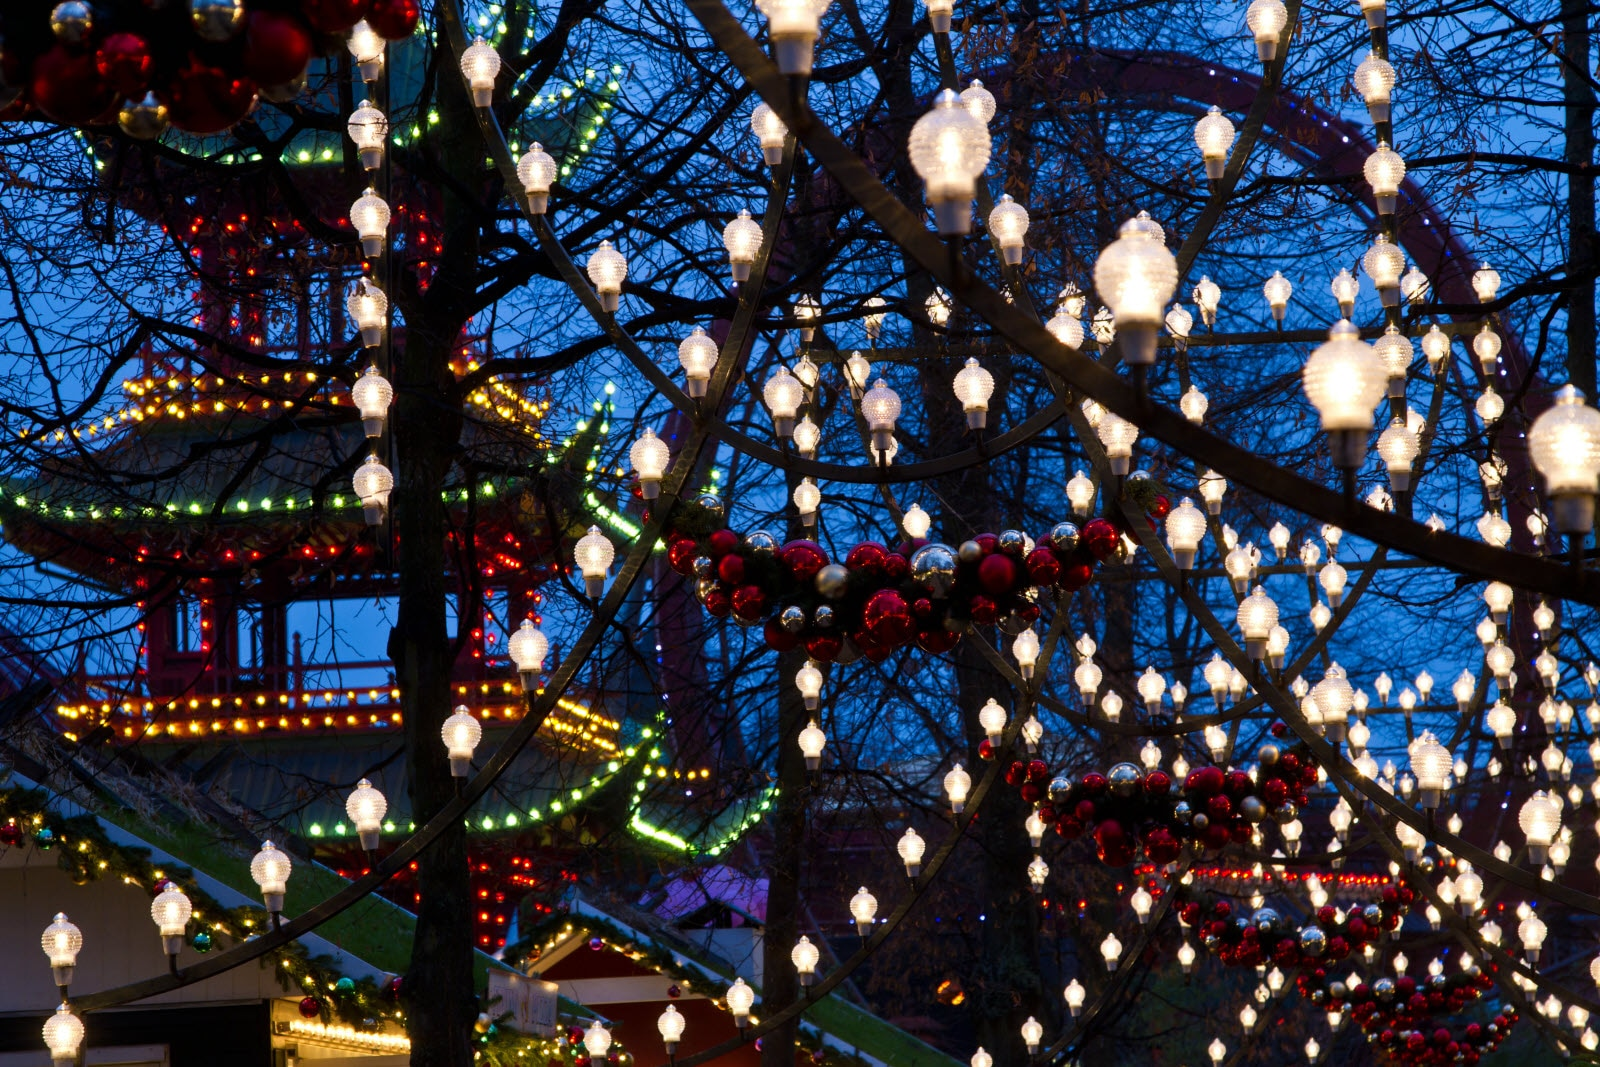 Christmas at the Tivoli in Copenhagen at night. The lights are bright.